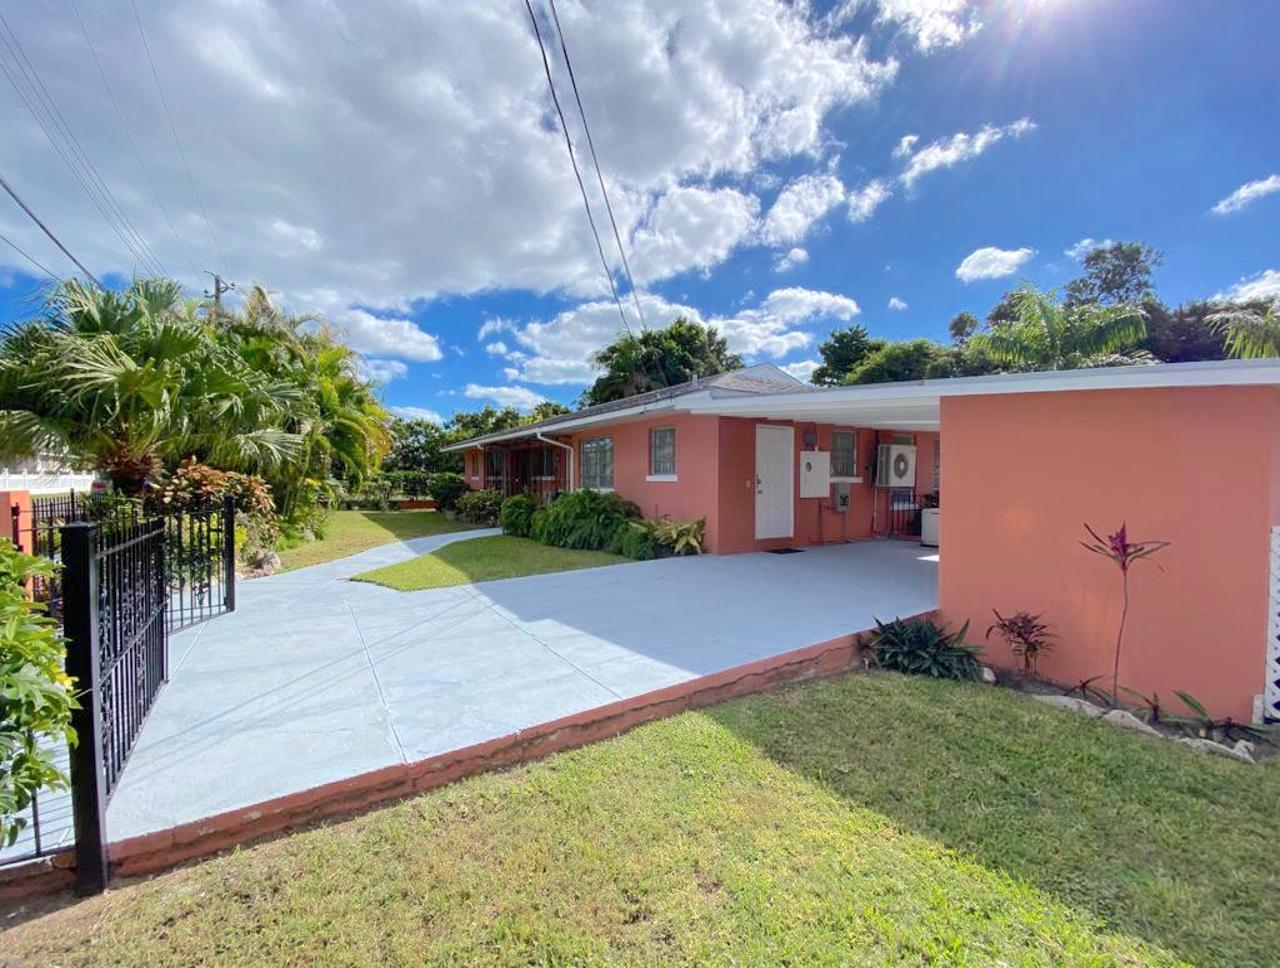 Nassau Home with Pool For Sale